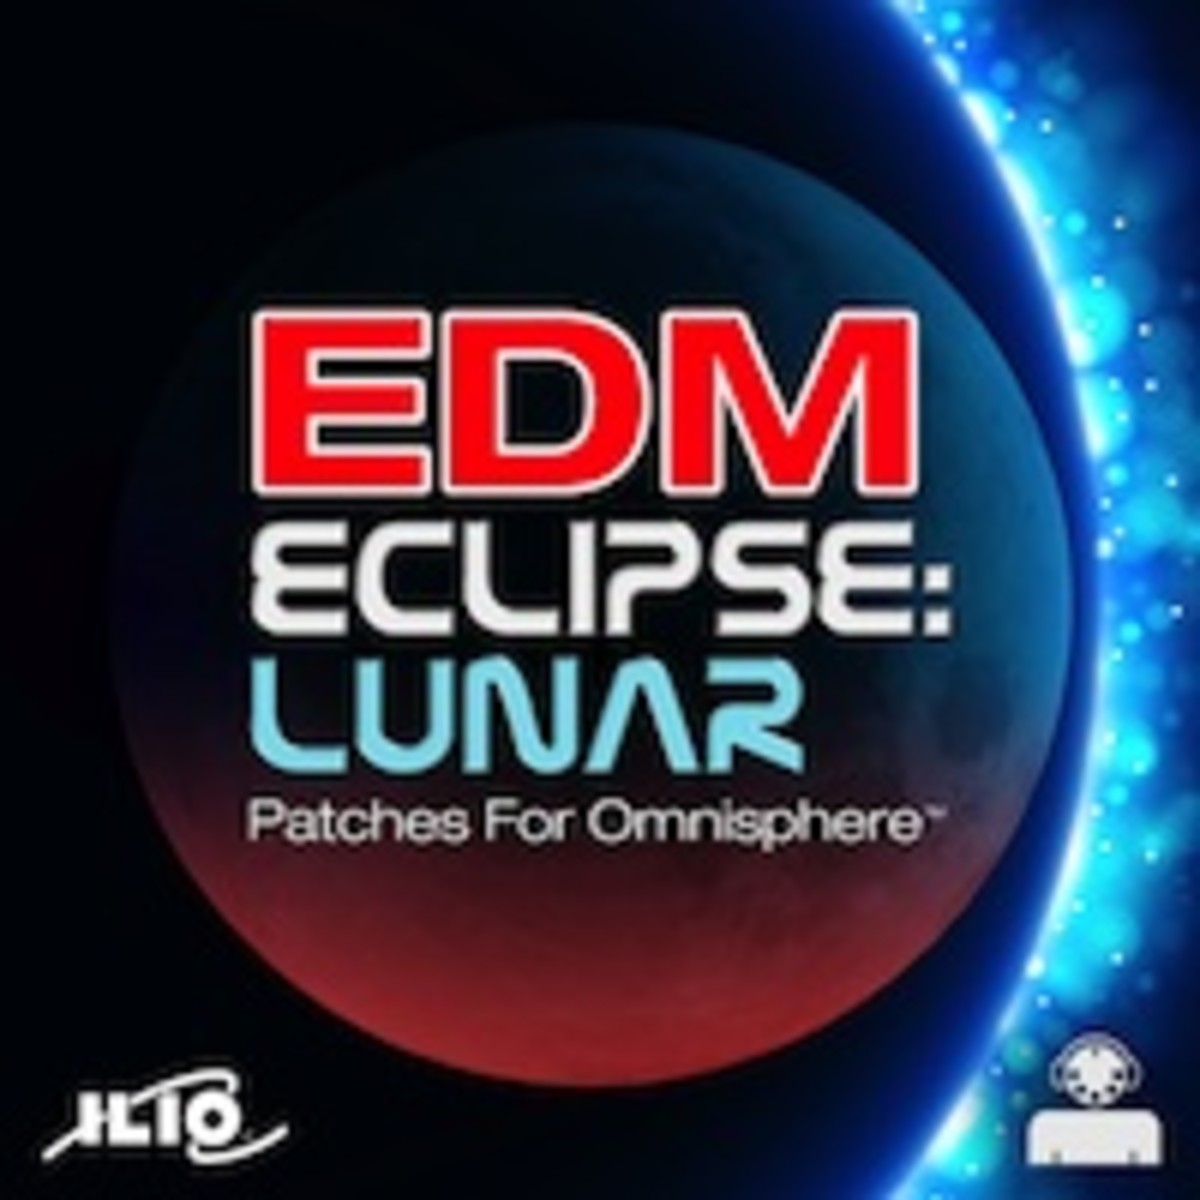 EDM Eclipse: Lunar Patches for Omnisphere